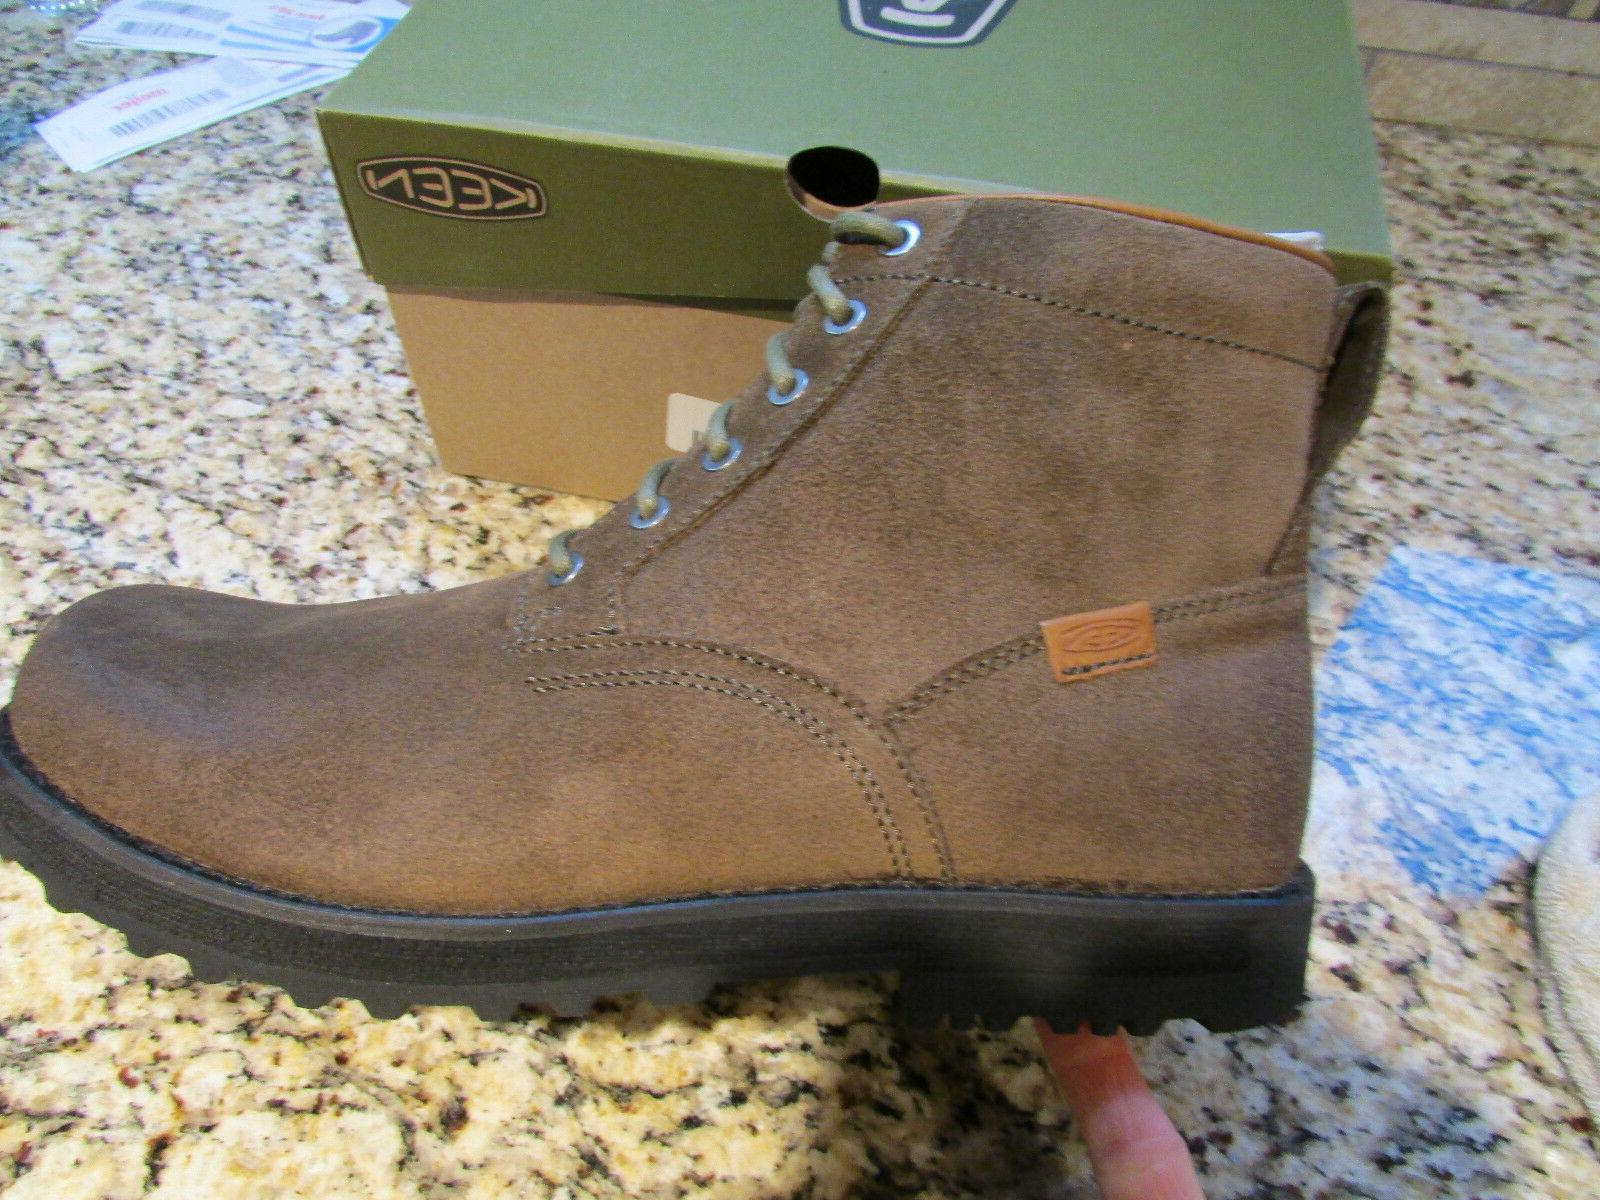 NEW KEEN THE 59 SHITAKE SUEDE BOOTS MENS 12 ANKLE BOOTS 1013